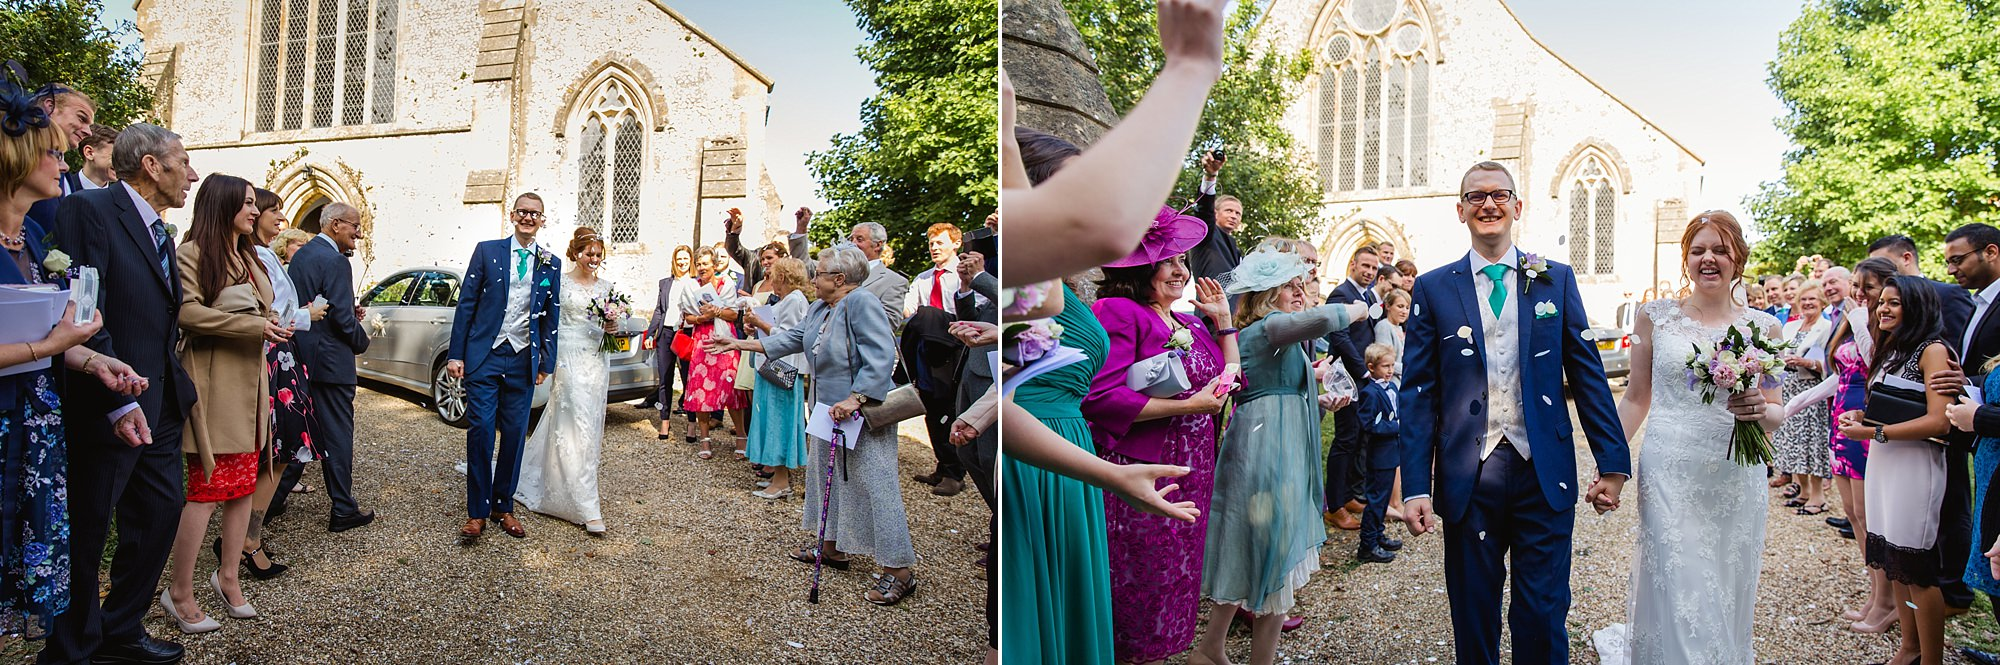 Canon Lane Chichester wedding bride and groom walk through confetti